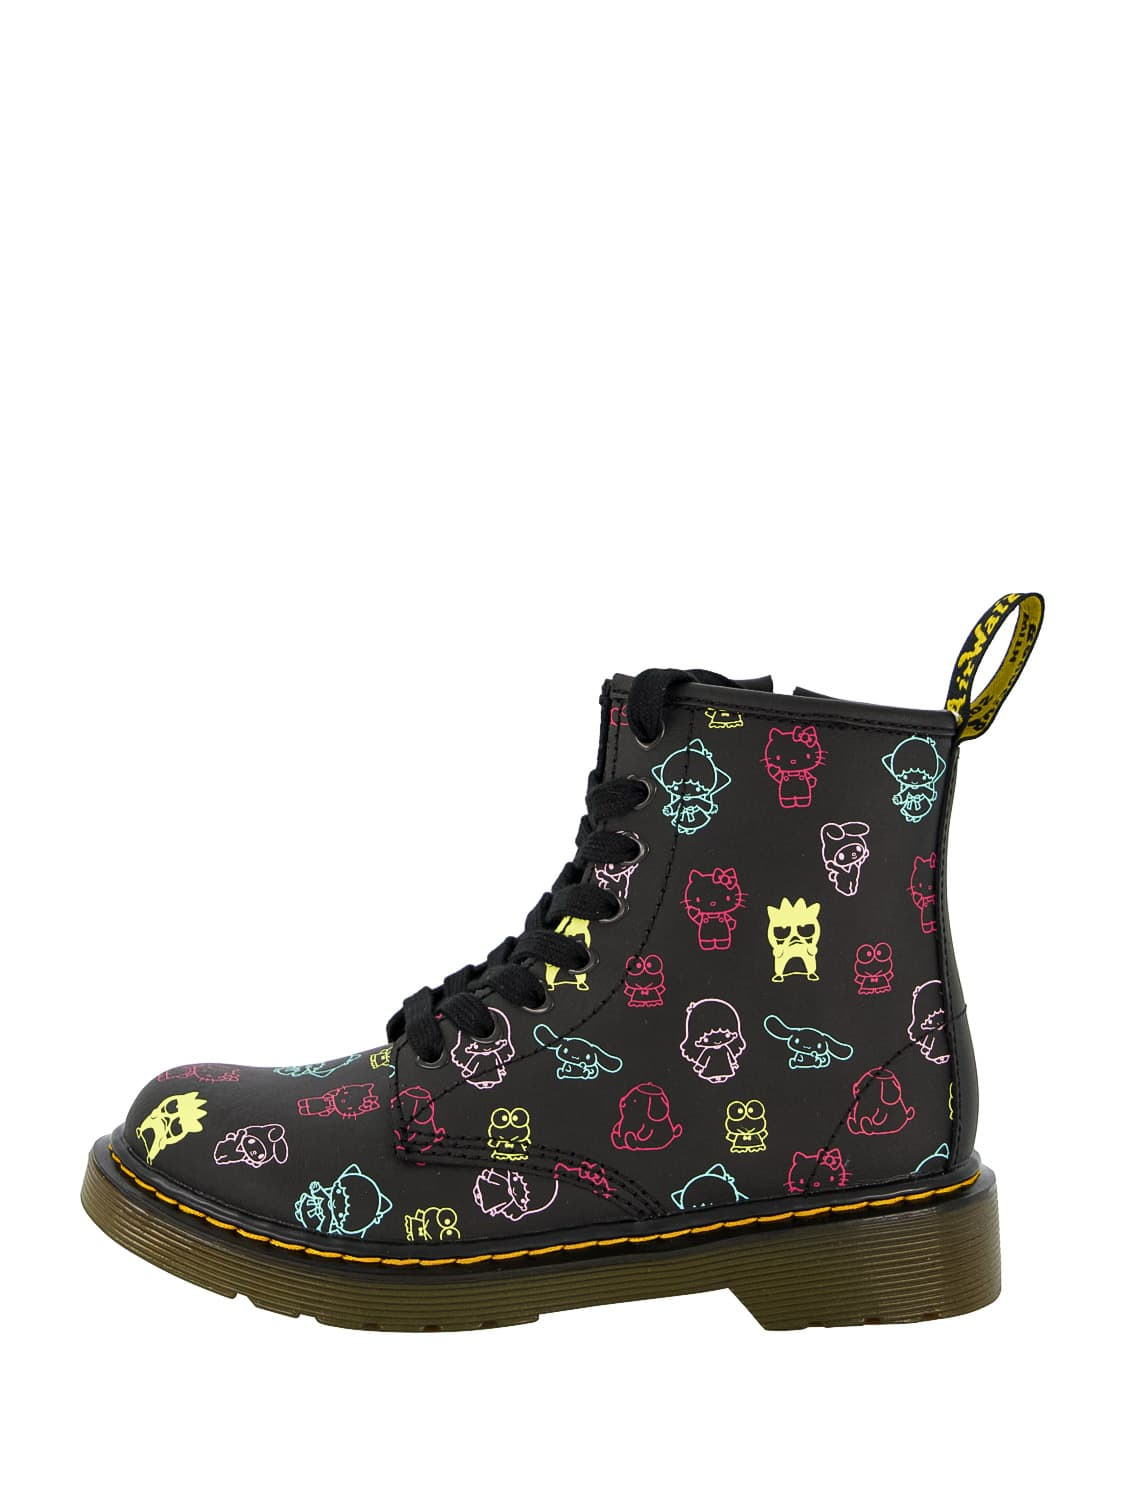 Dr. Martens KIDS BOOTS 1460 DR. MARTENS X HELLO KITTY AND...